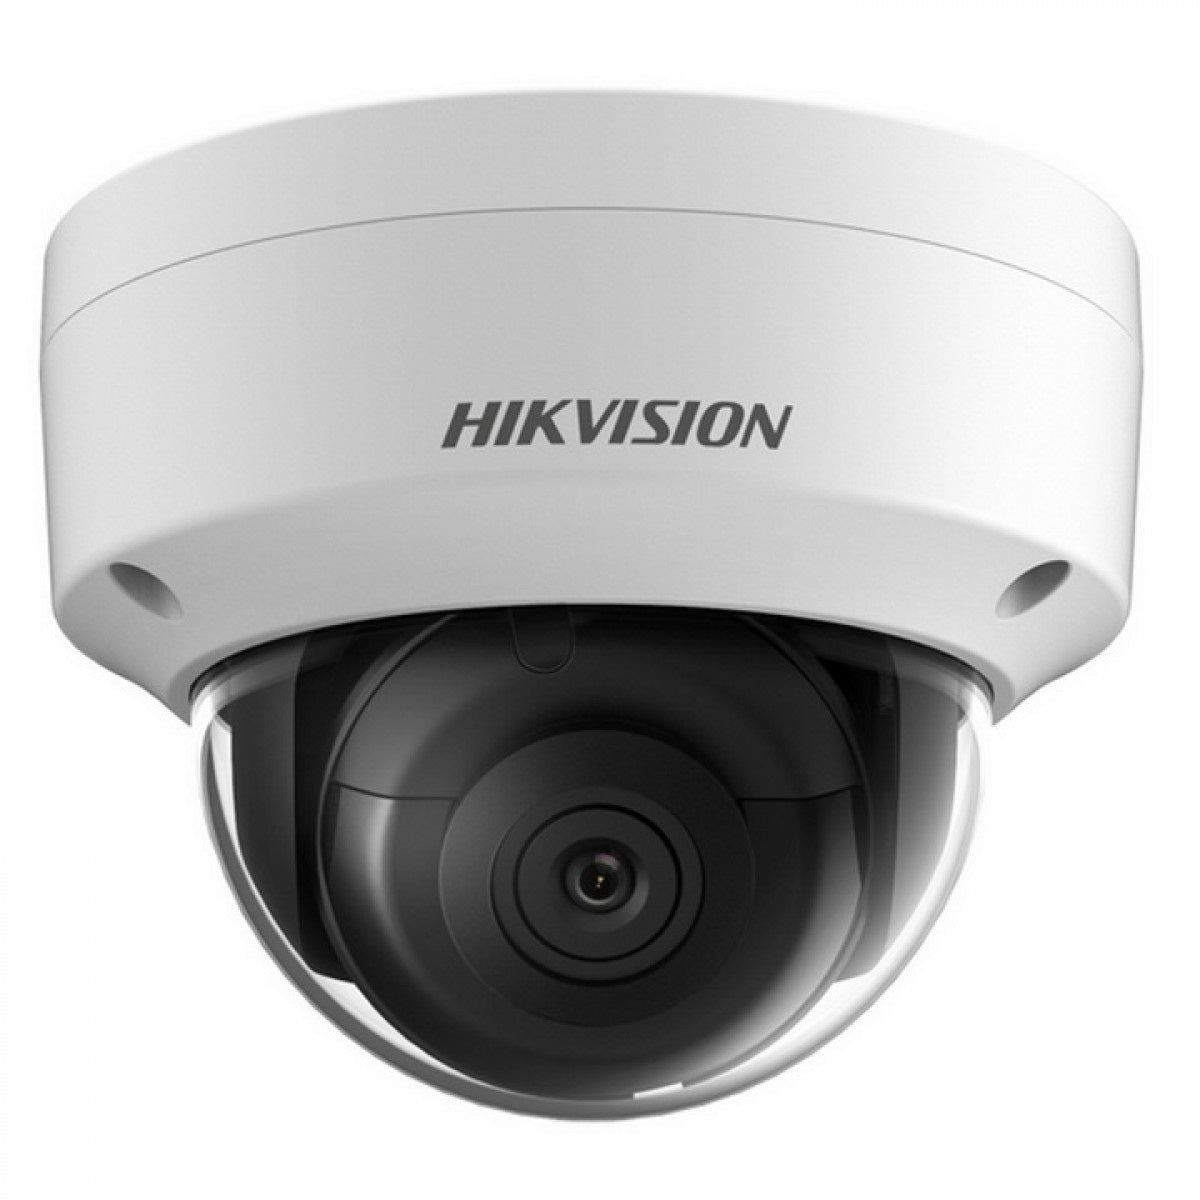 Hikvision DS-2CD1123G0-I Dome IP Camera (CCTV)